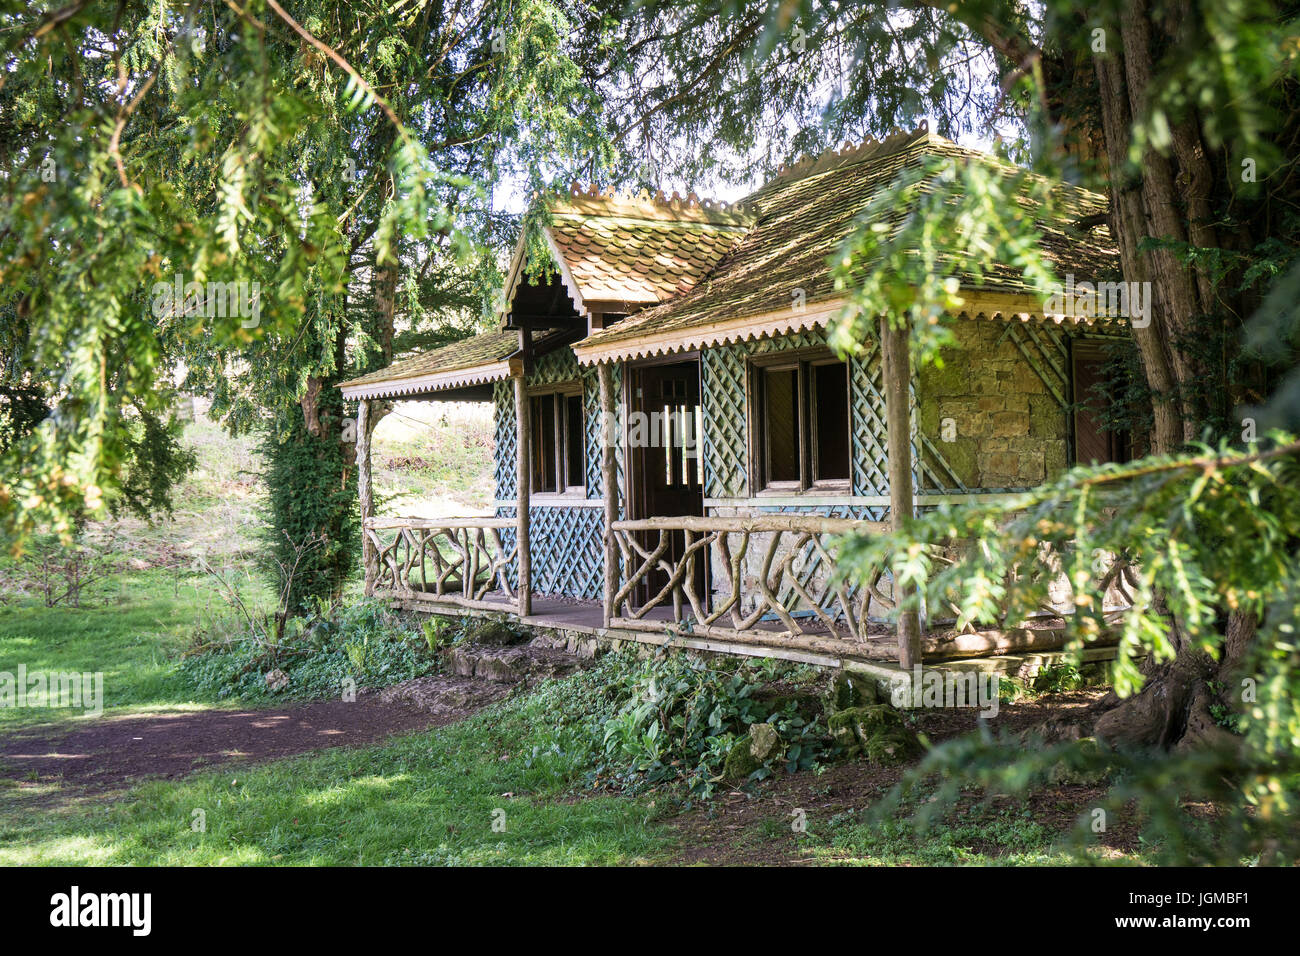 A dis-used summerhouse in the garden at Lowther Castle, Cumbria, UK - Stock Image